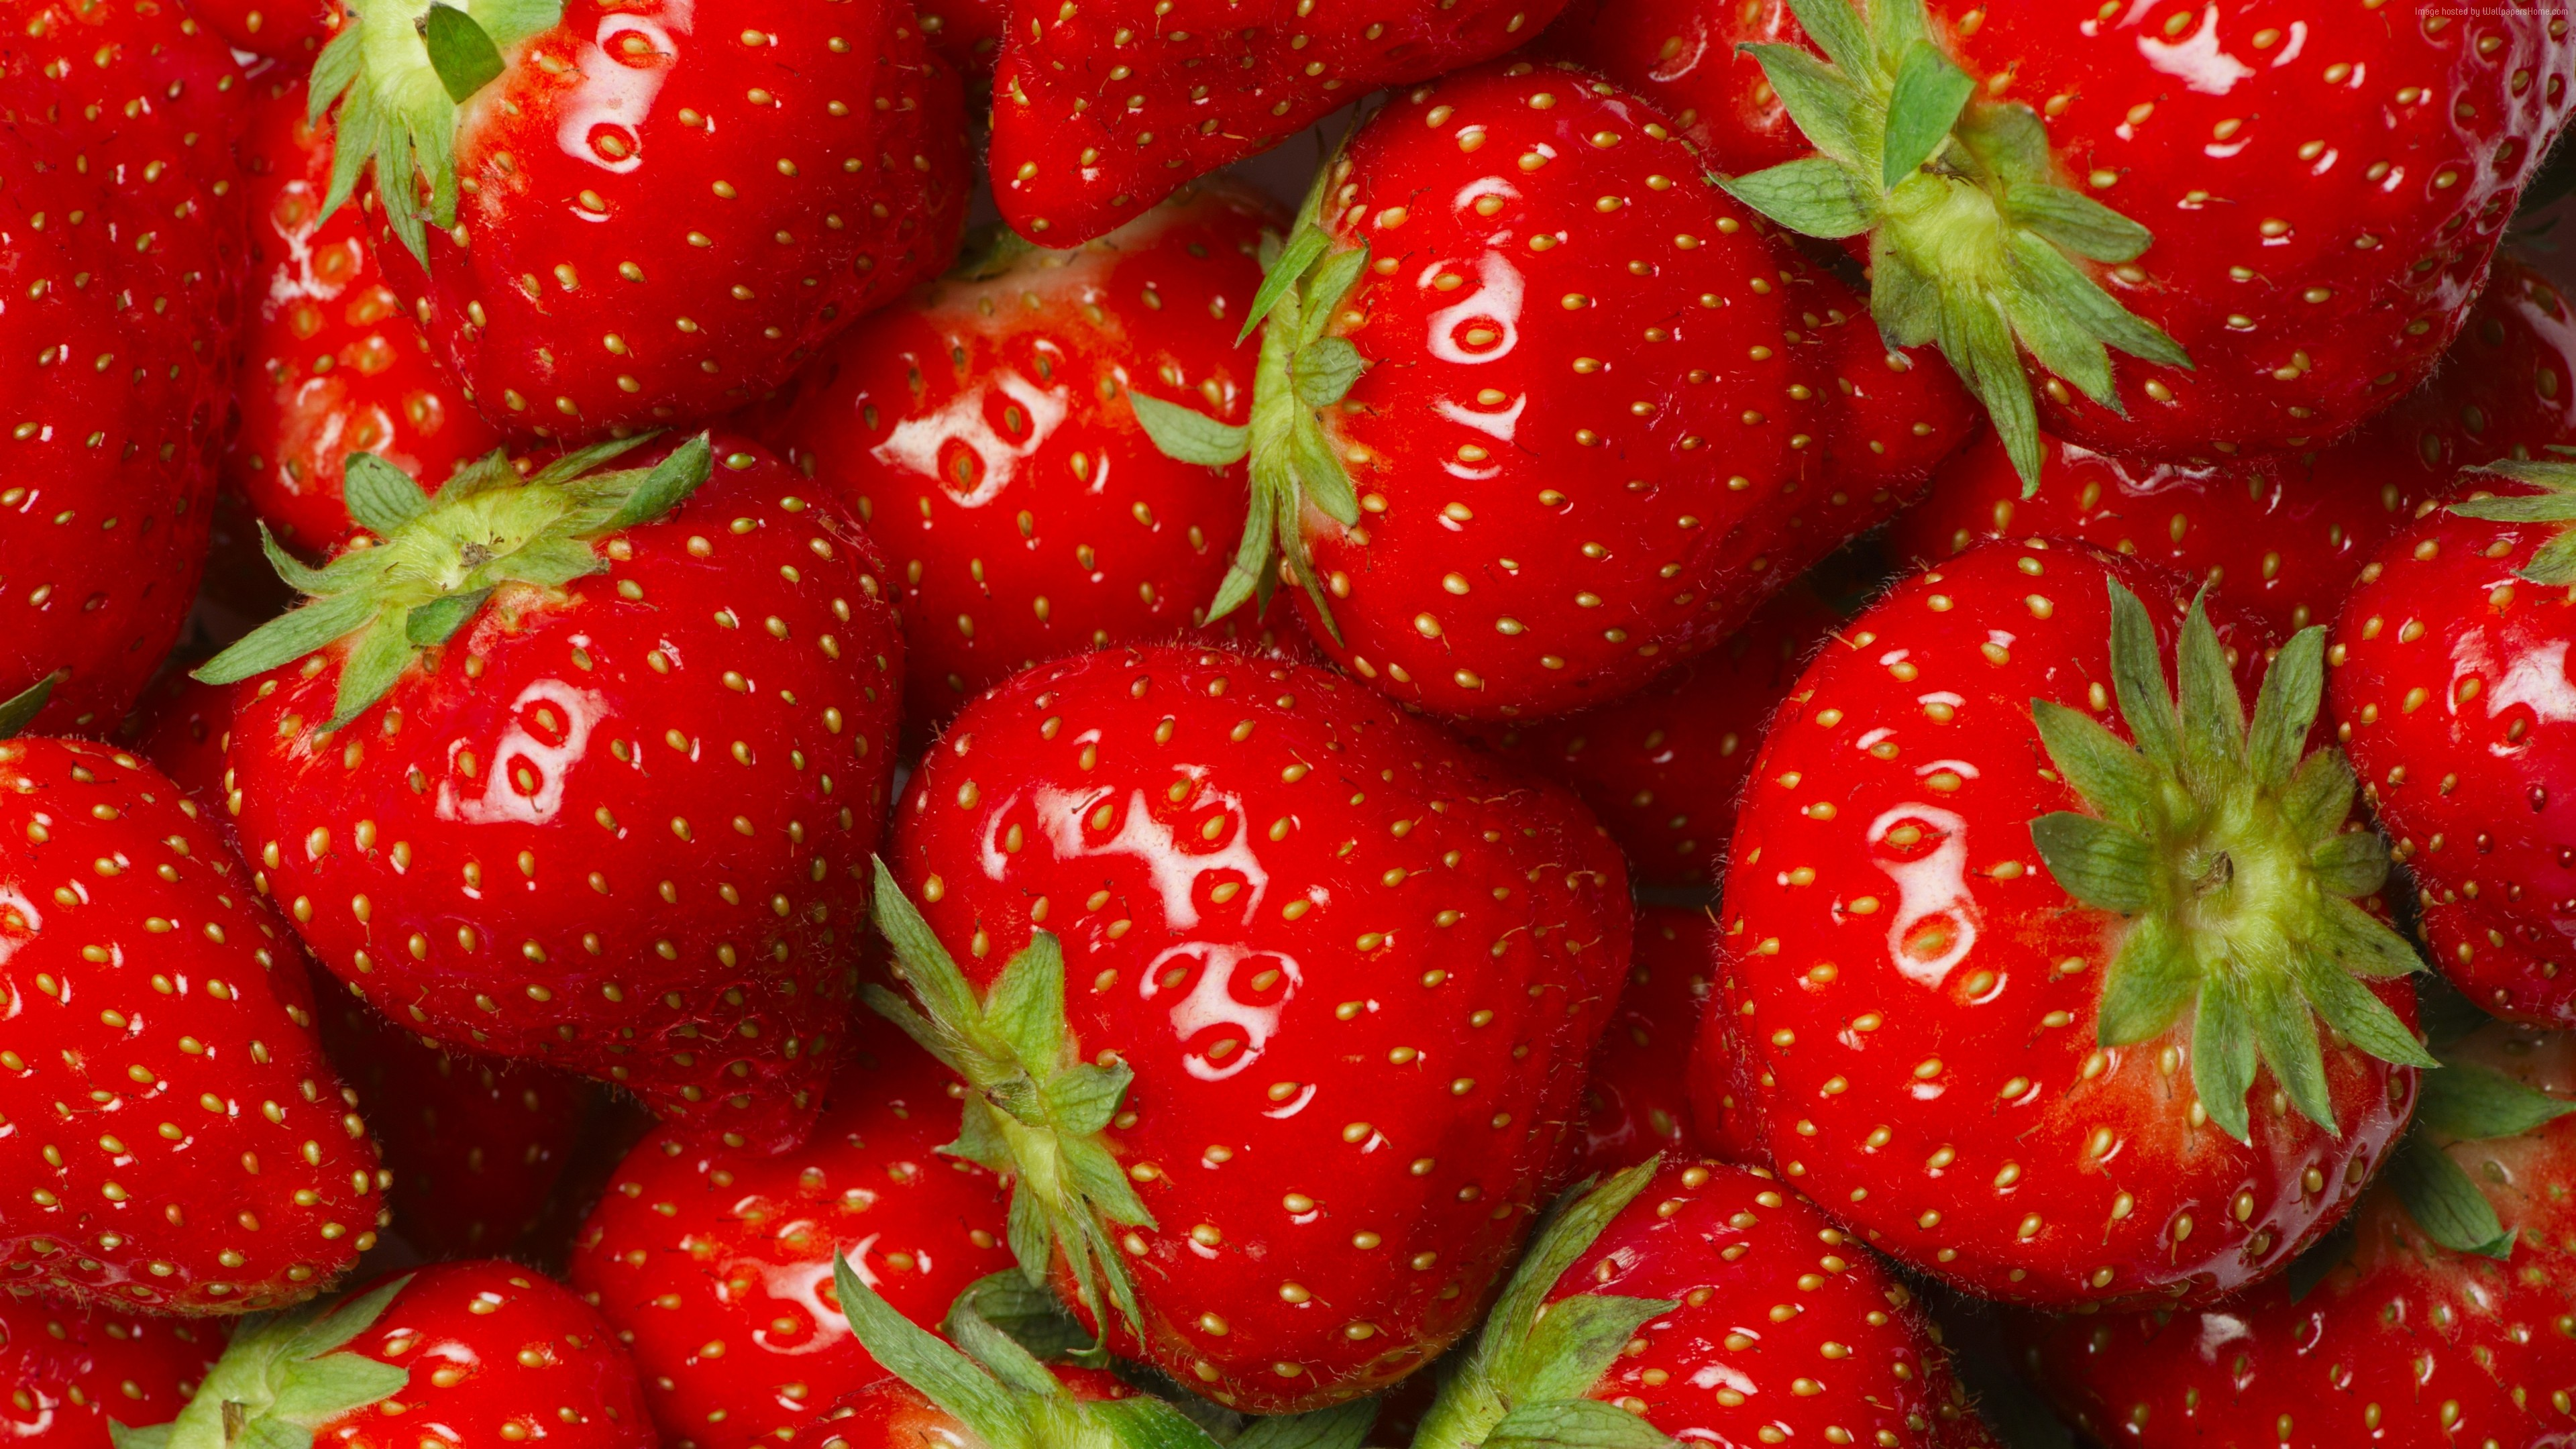 Wallpaper strawberry, 8k, Food